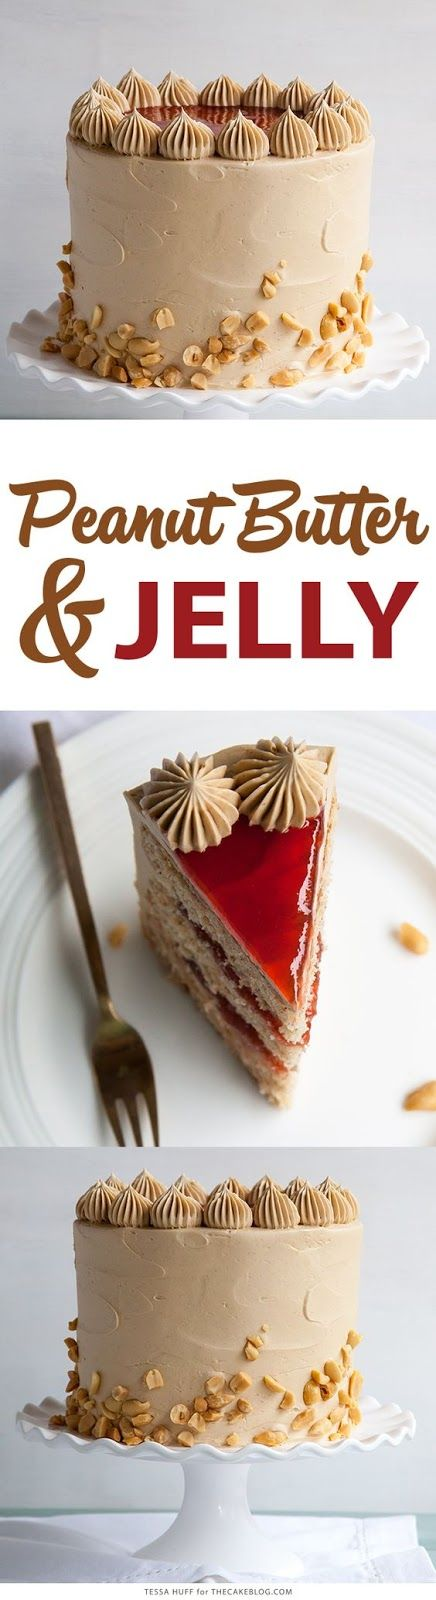 PEANUT BUTTER and JELLY CAKE   Food And Cake Recipes